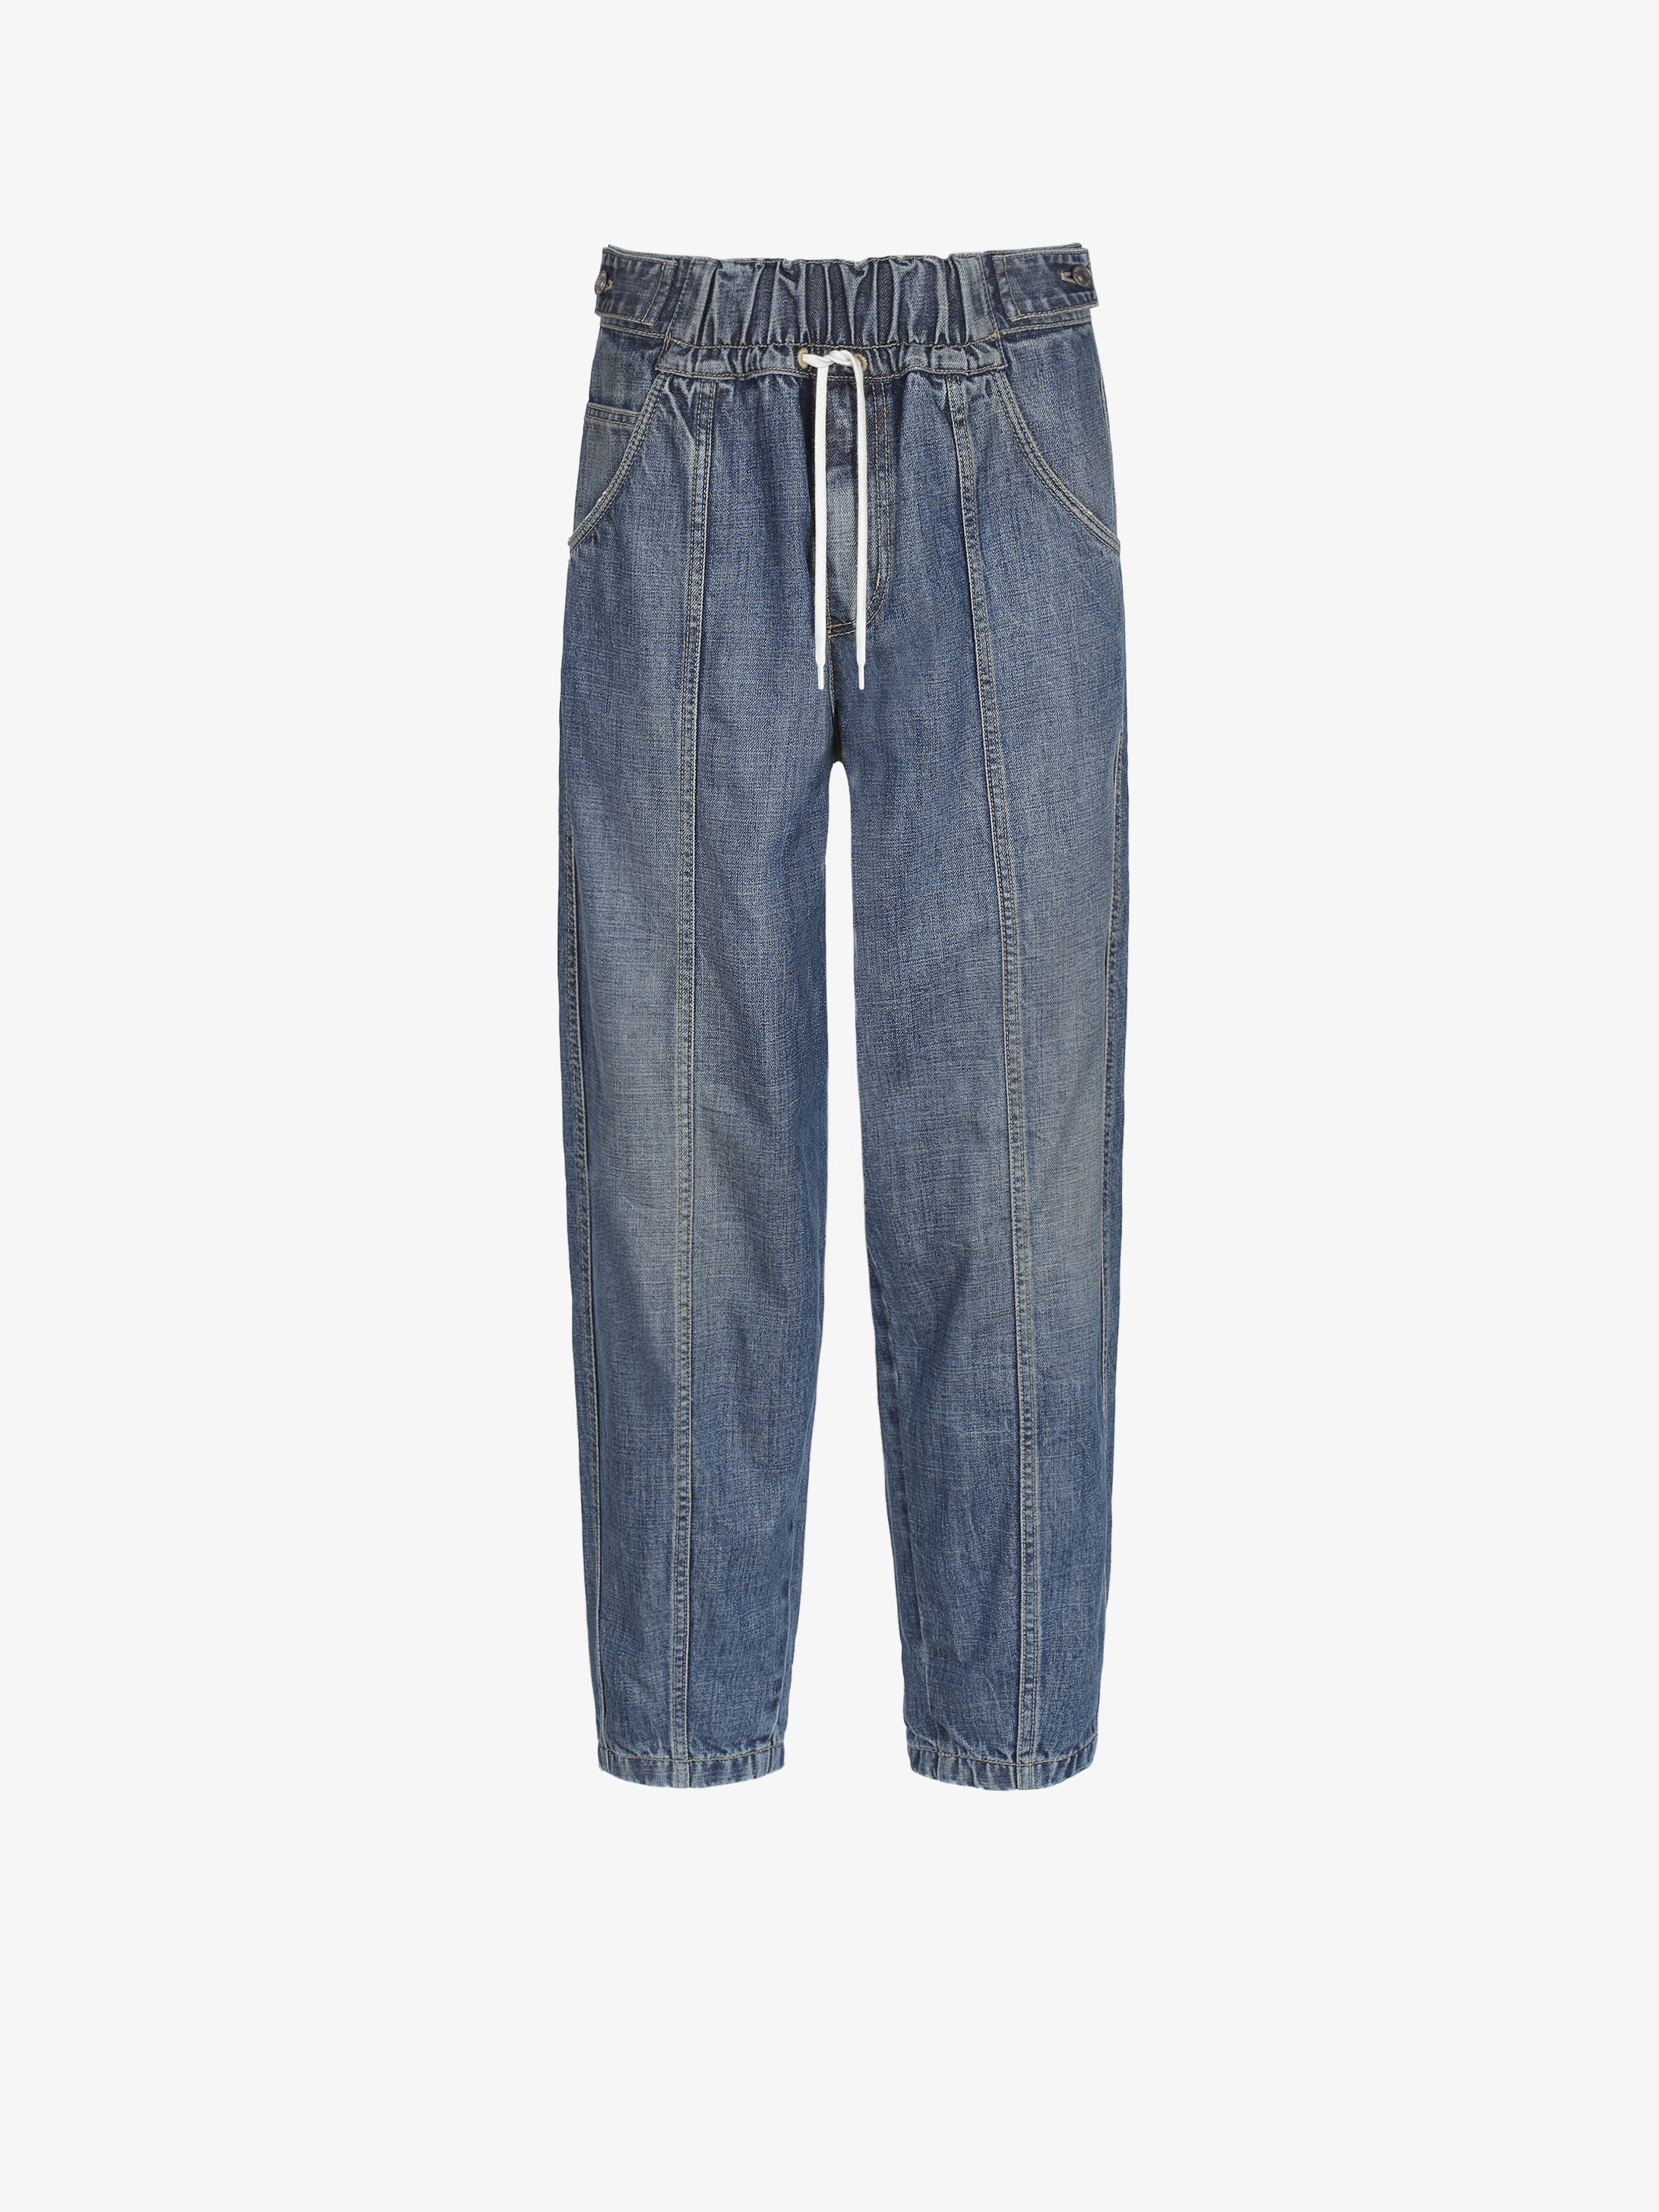 Jogger pants in denim with contrasted string